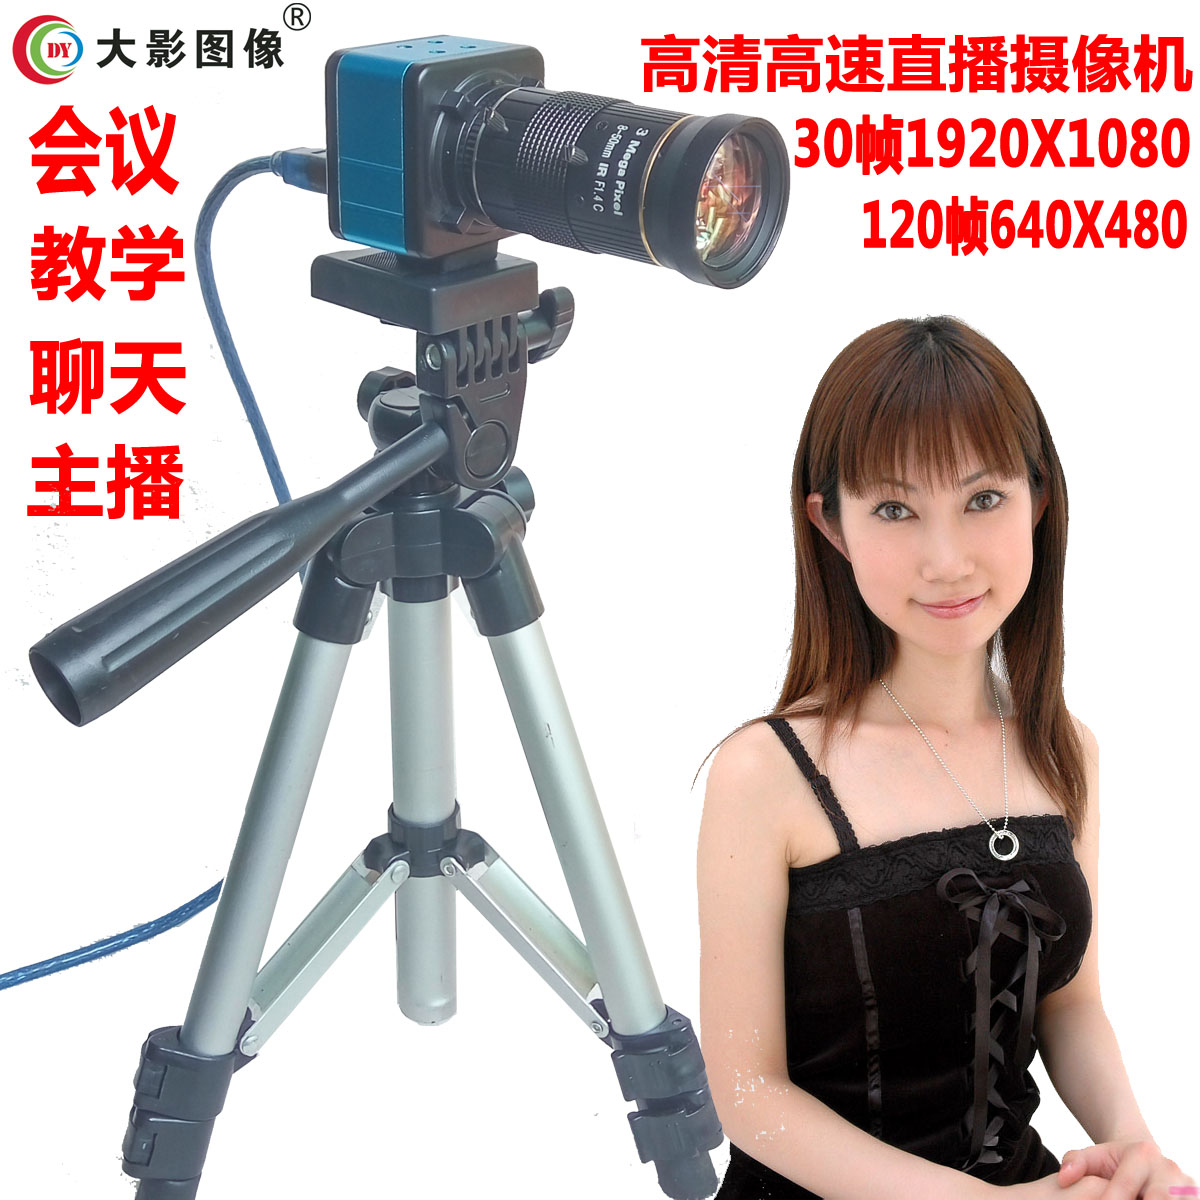 Face Recognition Camera 1080p30 Frame/second Video Teaching Remote Conference Chat Live USB Driver-free